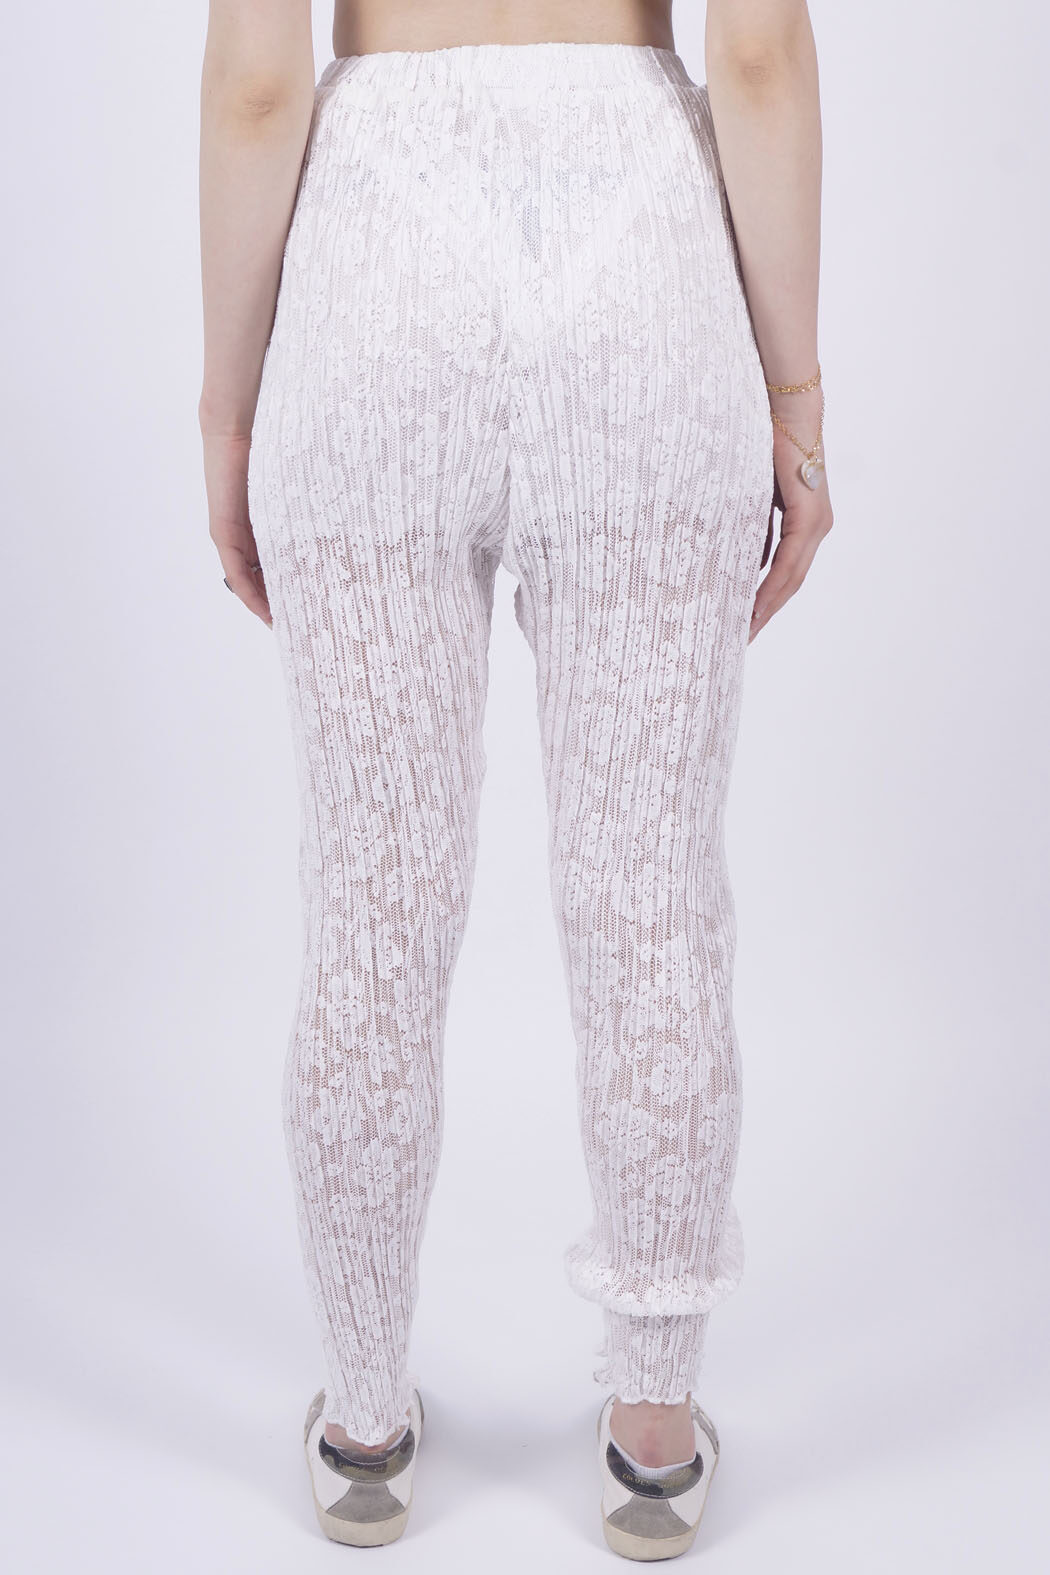 lace white back pantys